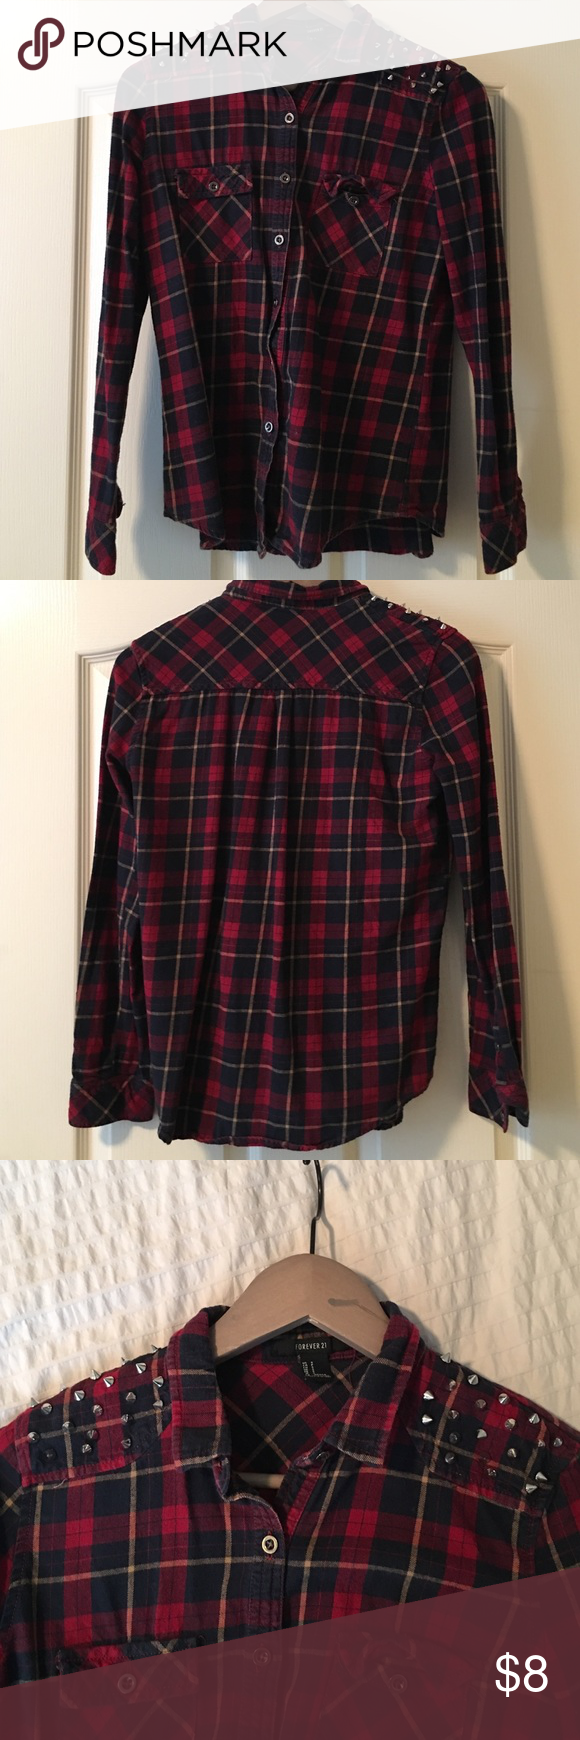 Forever 21 Red Flannel With Spike Embellisments Forever 21 red flannel with spike embellishments. Good condition. Forever 21 Tops Button Down Shirts